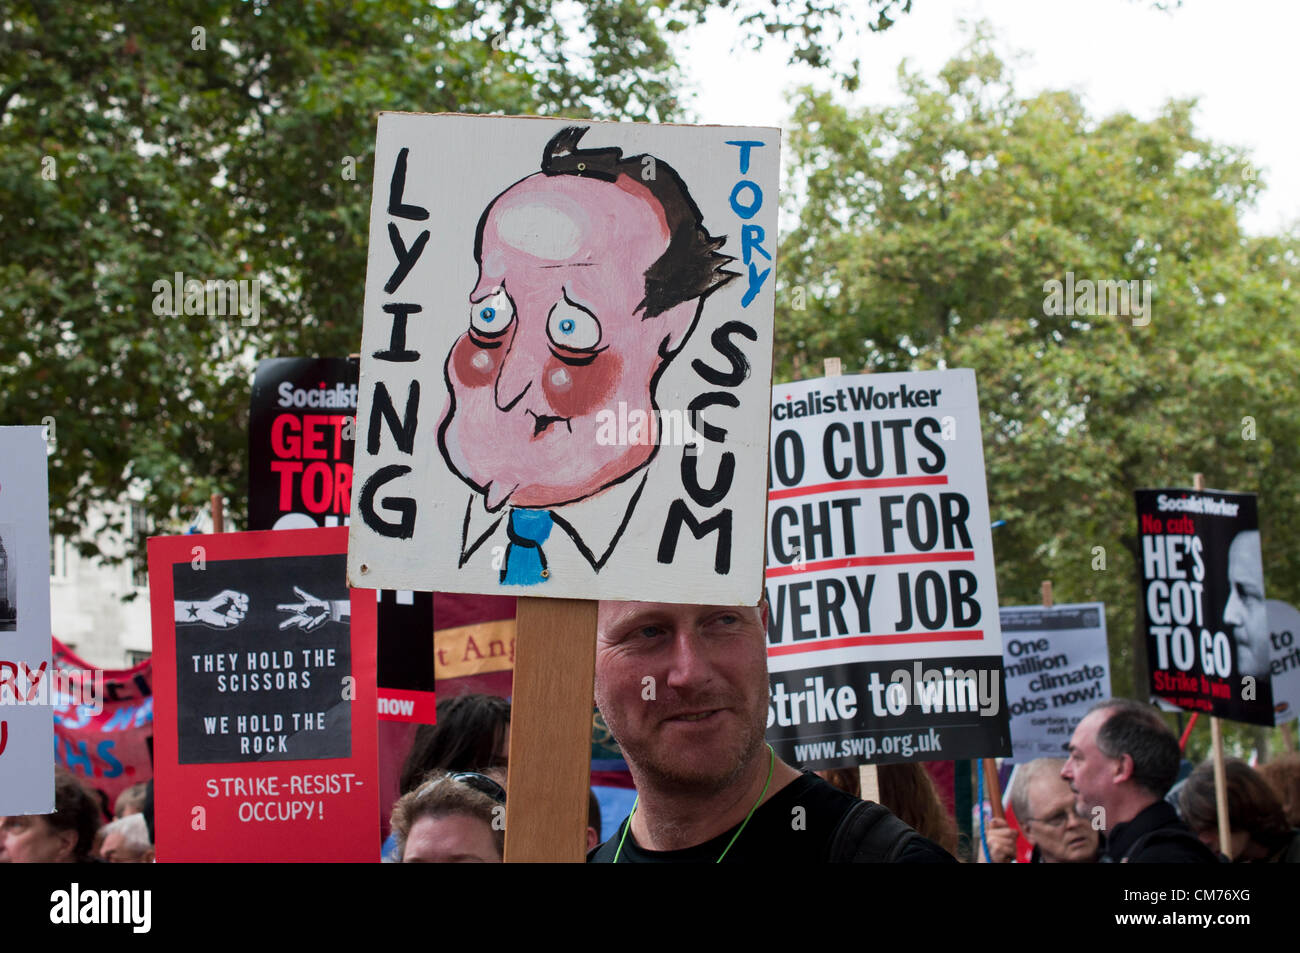 20/10/2012, London UK. A man brandishes a placard with an unflattering hand painted portrait of David Cameron as - Stock Image